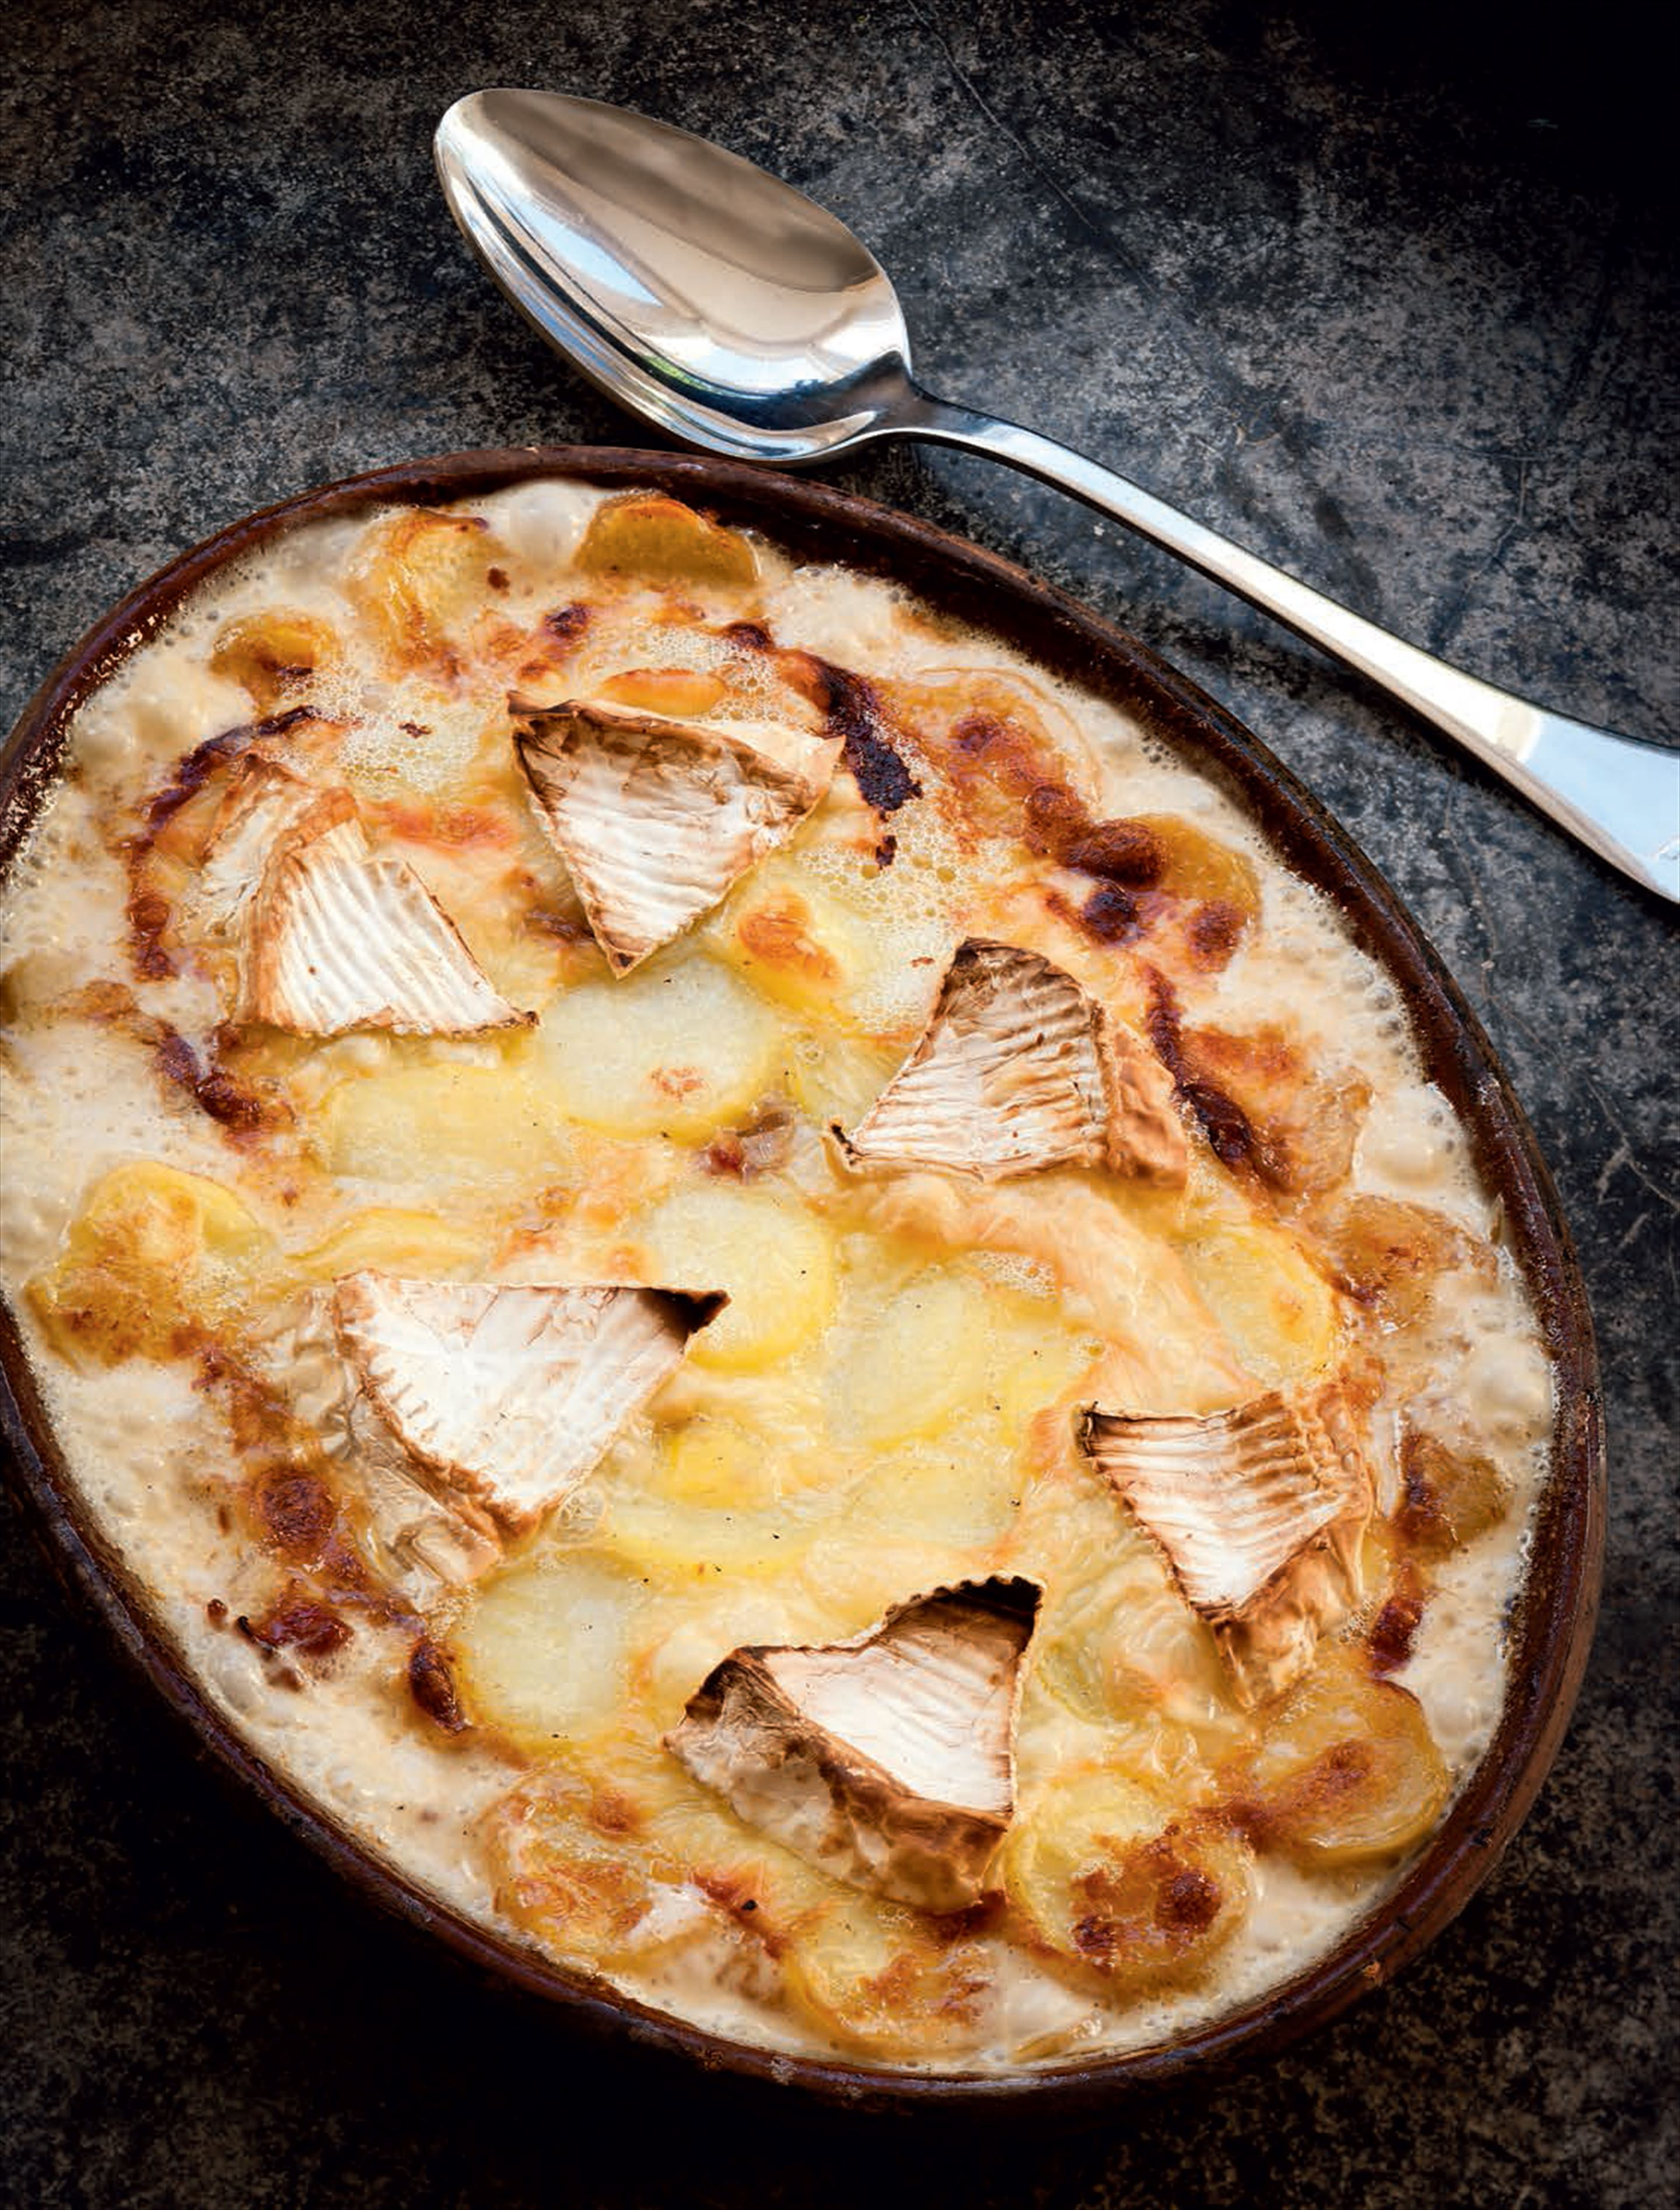 My salute to the tartiflette of my youth